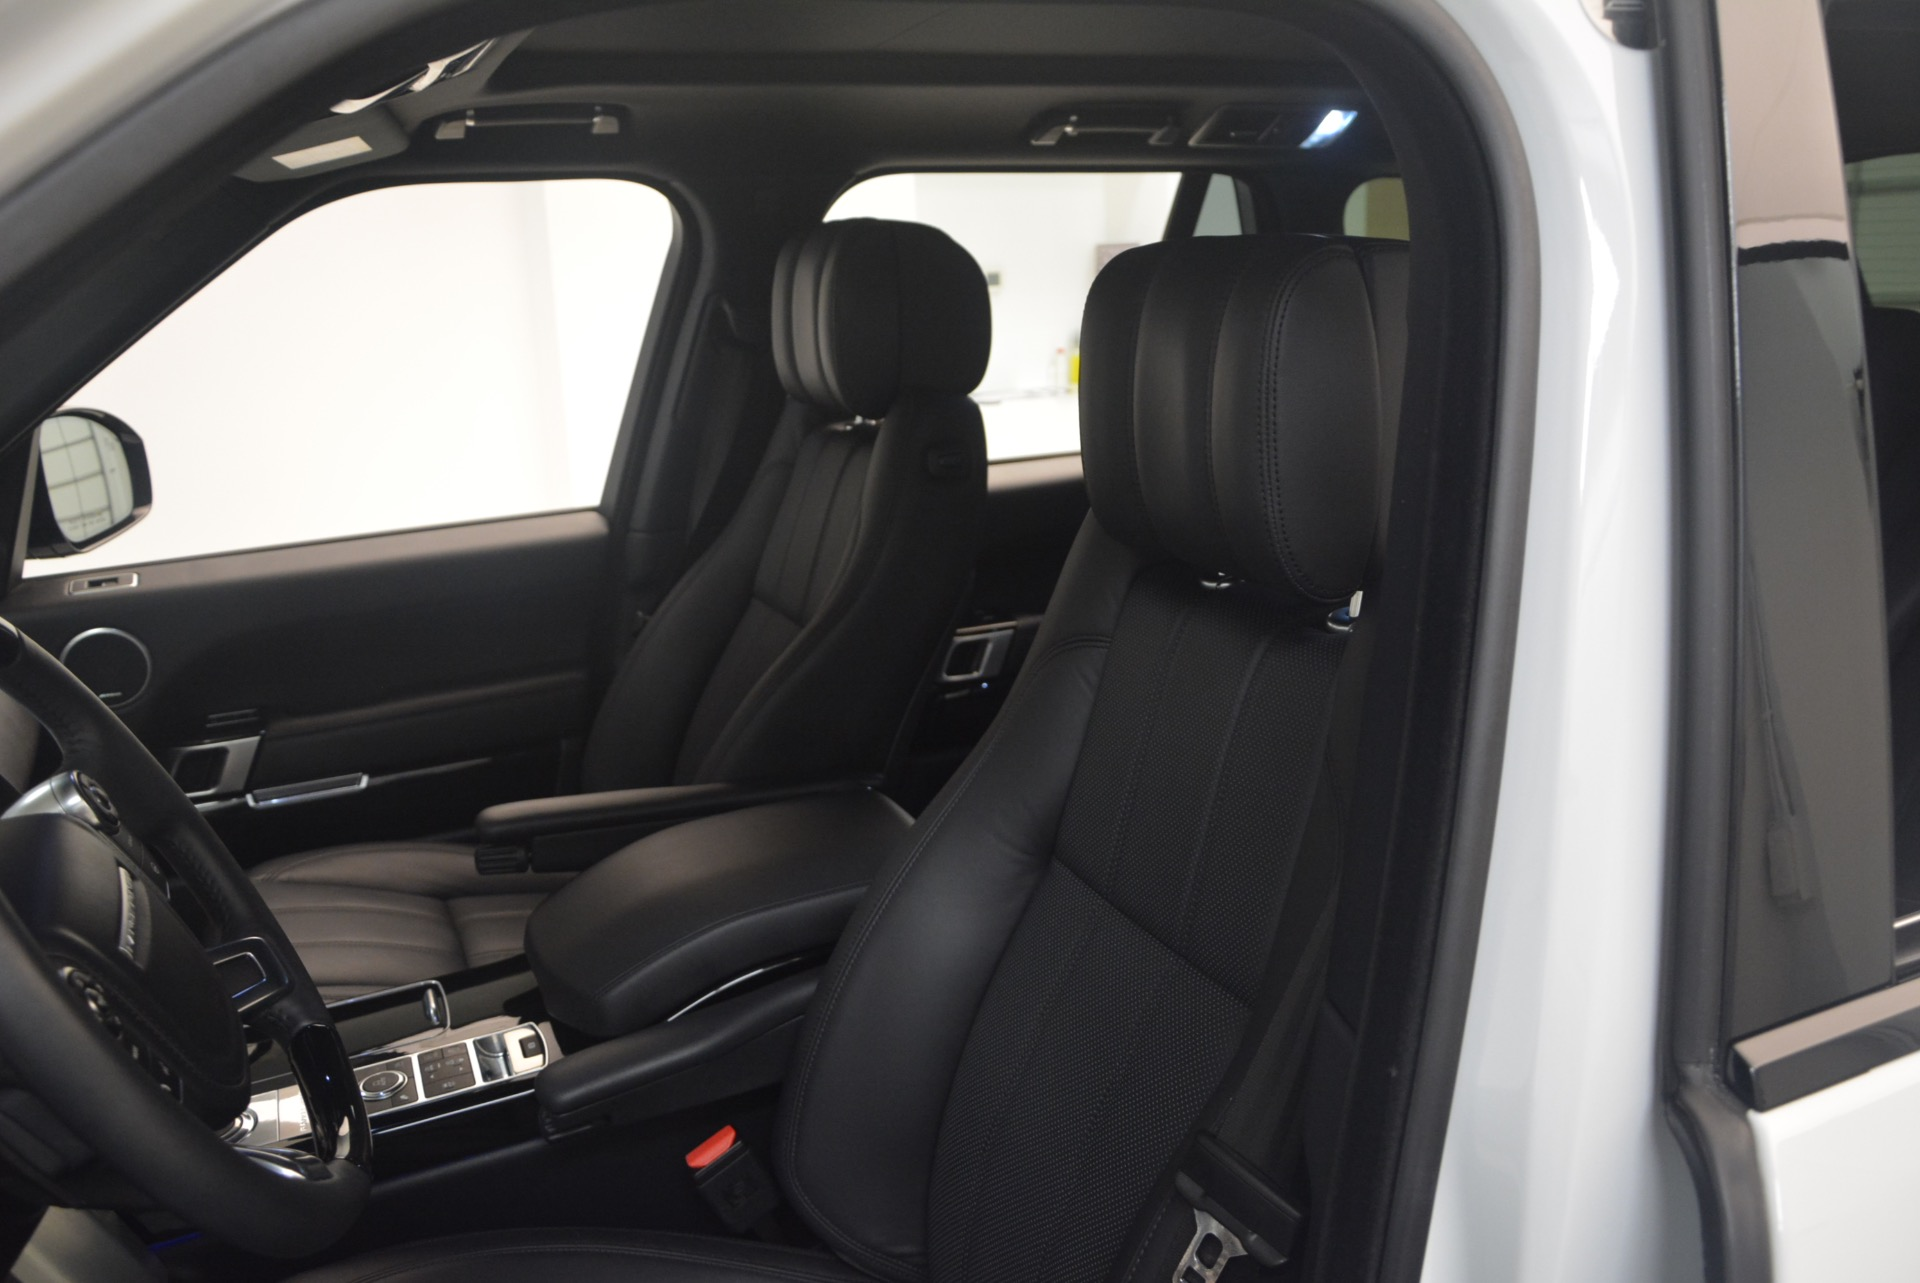 Used 2015 Land Rover Range Rover Supercharged For Sale In Westport, CT 1292_p19